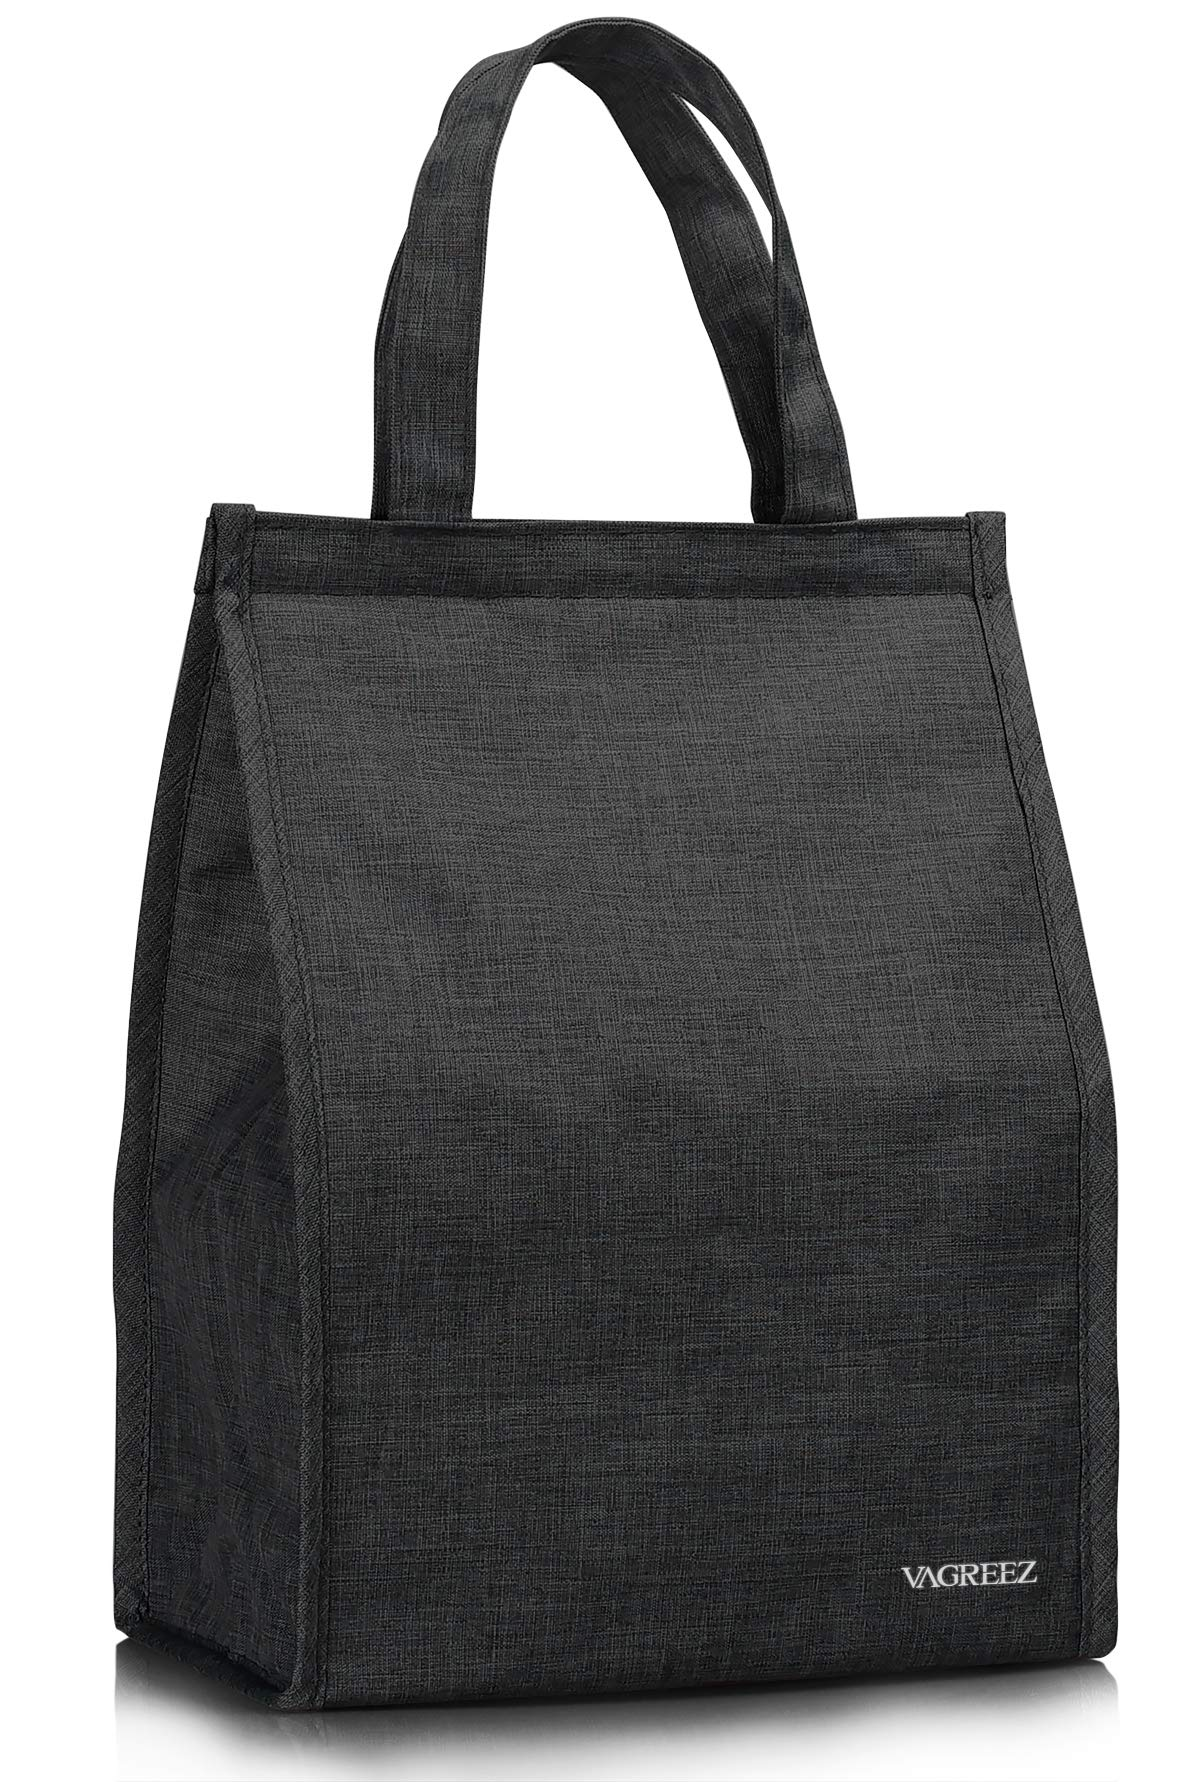 Lunch Bag, VAGREEZ Insulated Lunch Bag Large Waterproof Adult Lunch Tote Bag For Men or Women (Black) by VAGREEZ